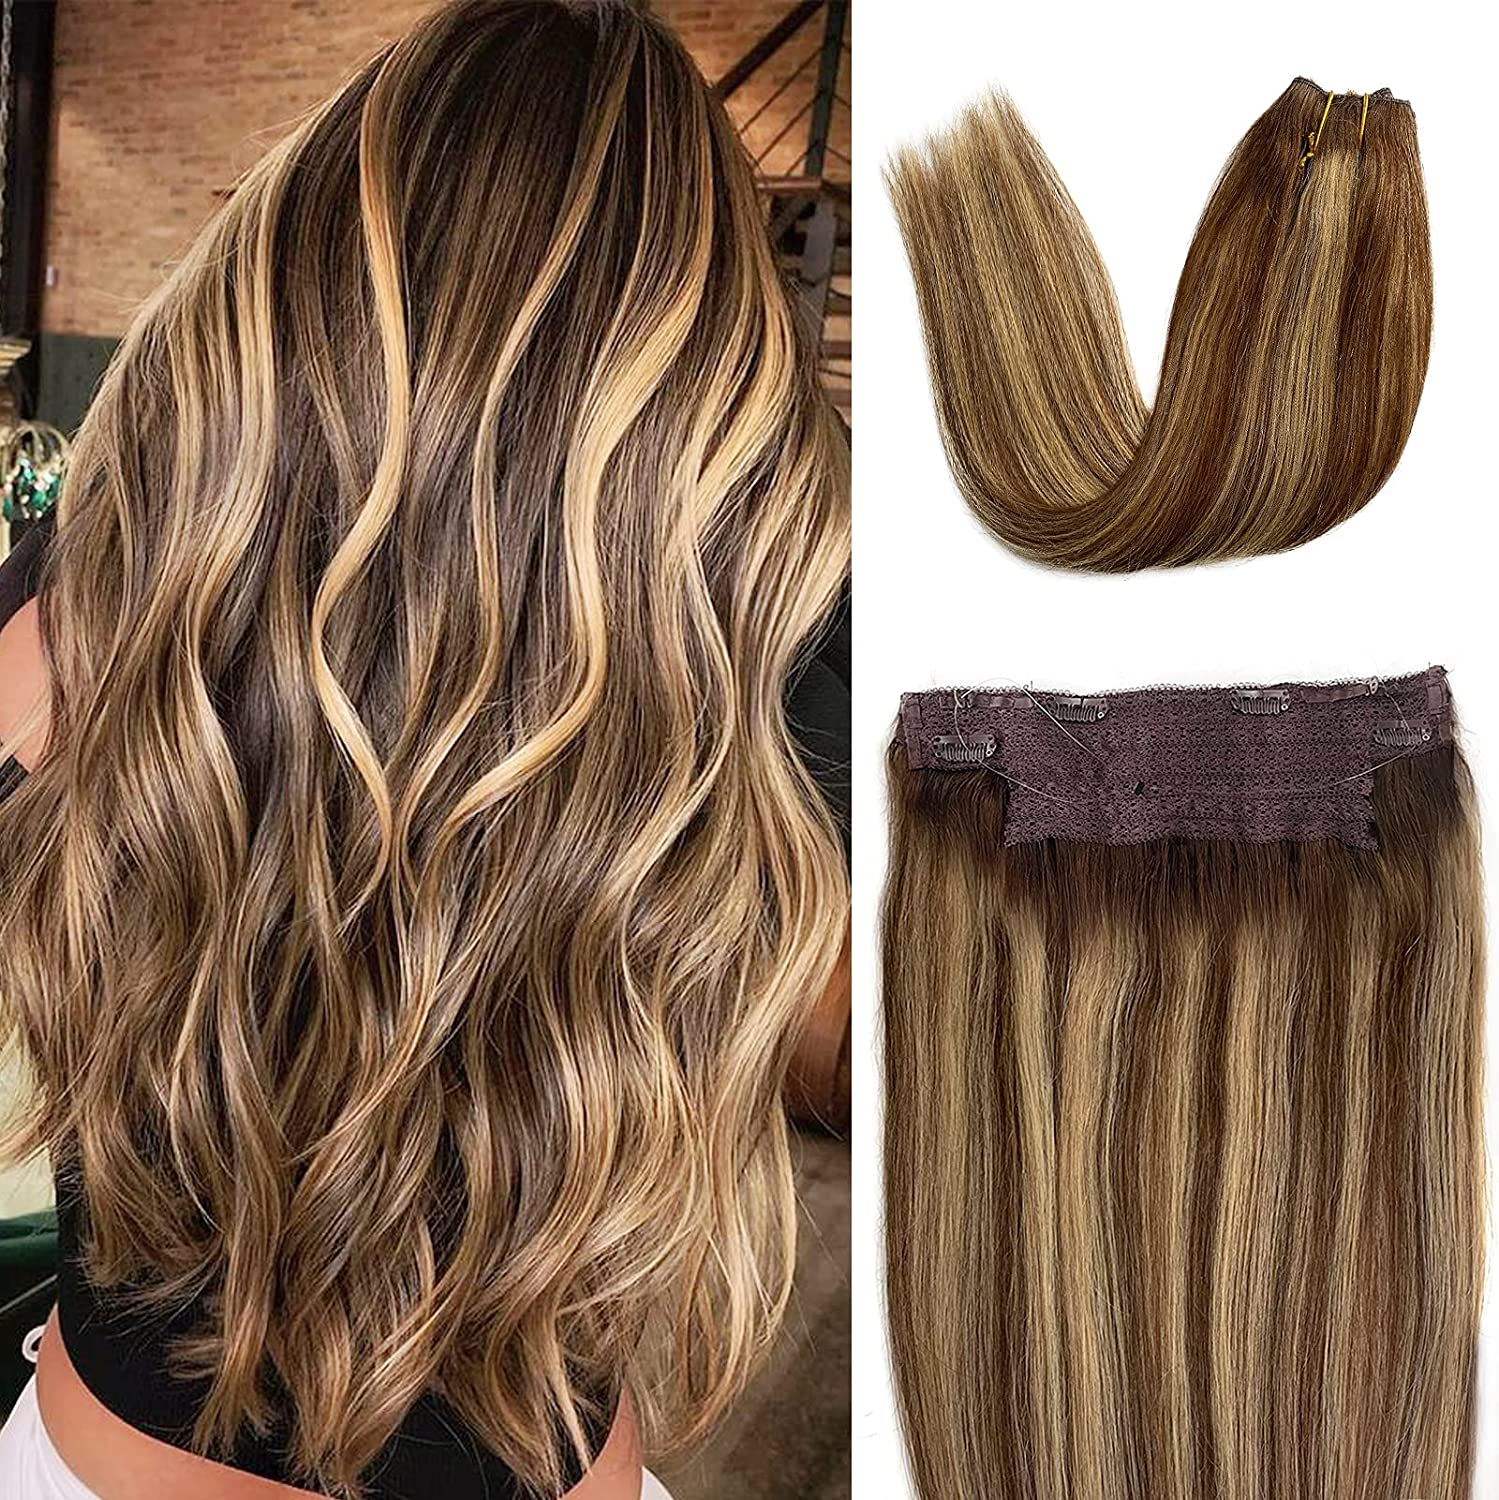 Human Hair Halo Extensions Award Be super welcome Chocolate Brown Ombre to